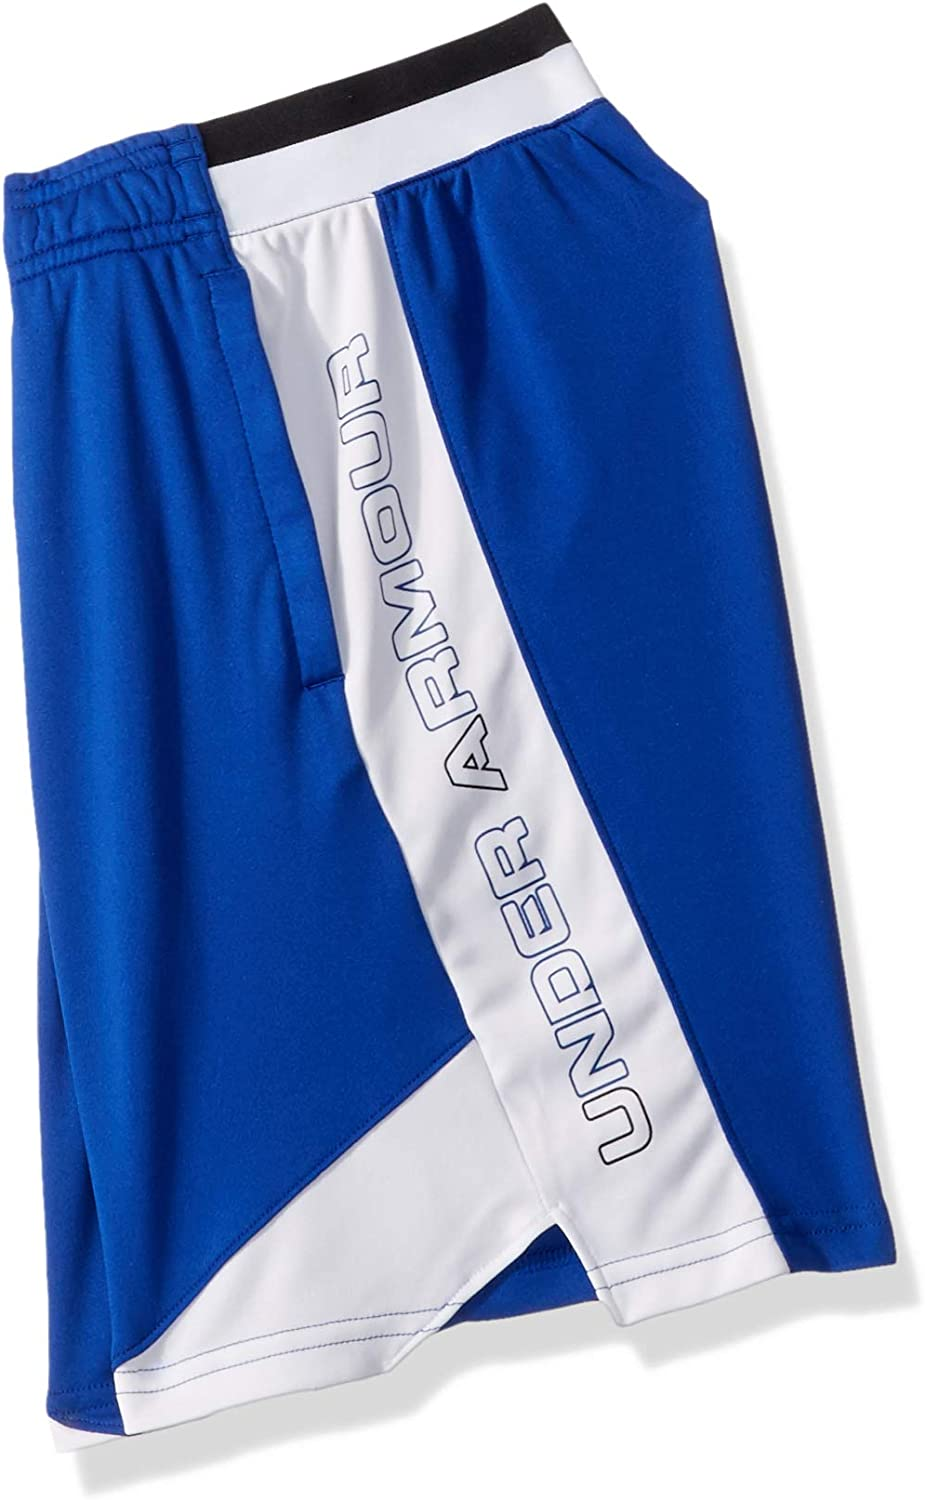 Under Armour Boys Stunt 2.0 Workout Gym Shorts